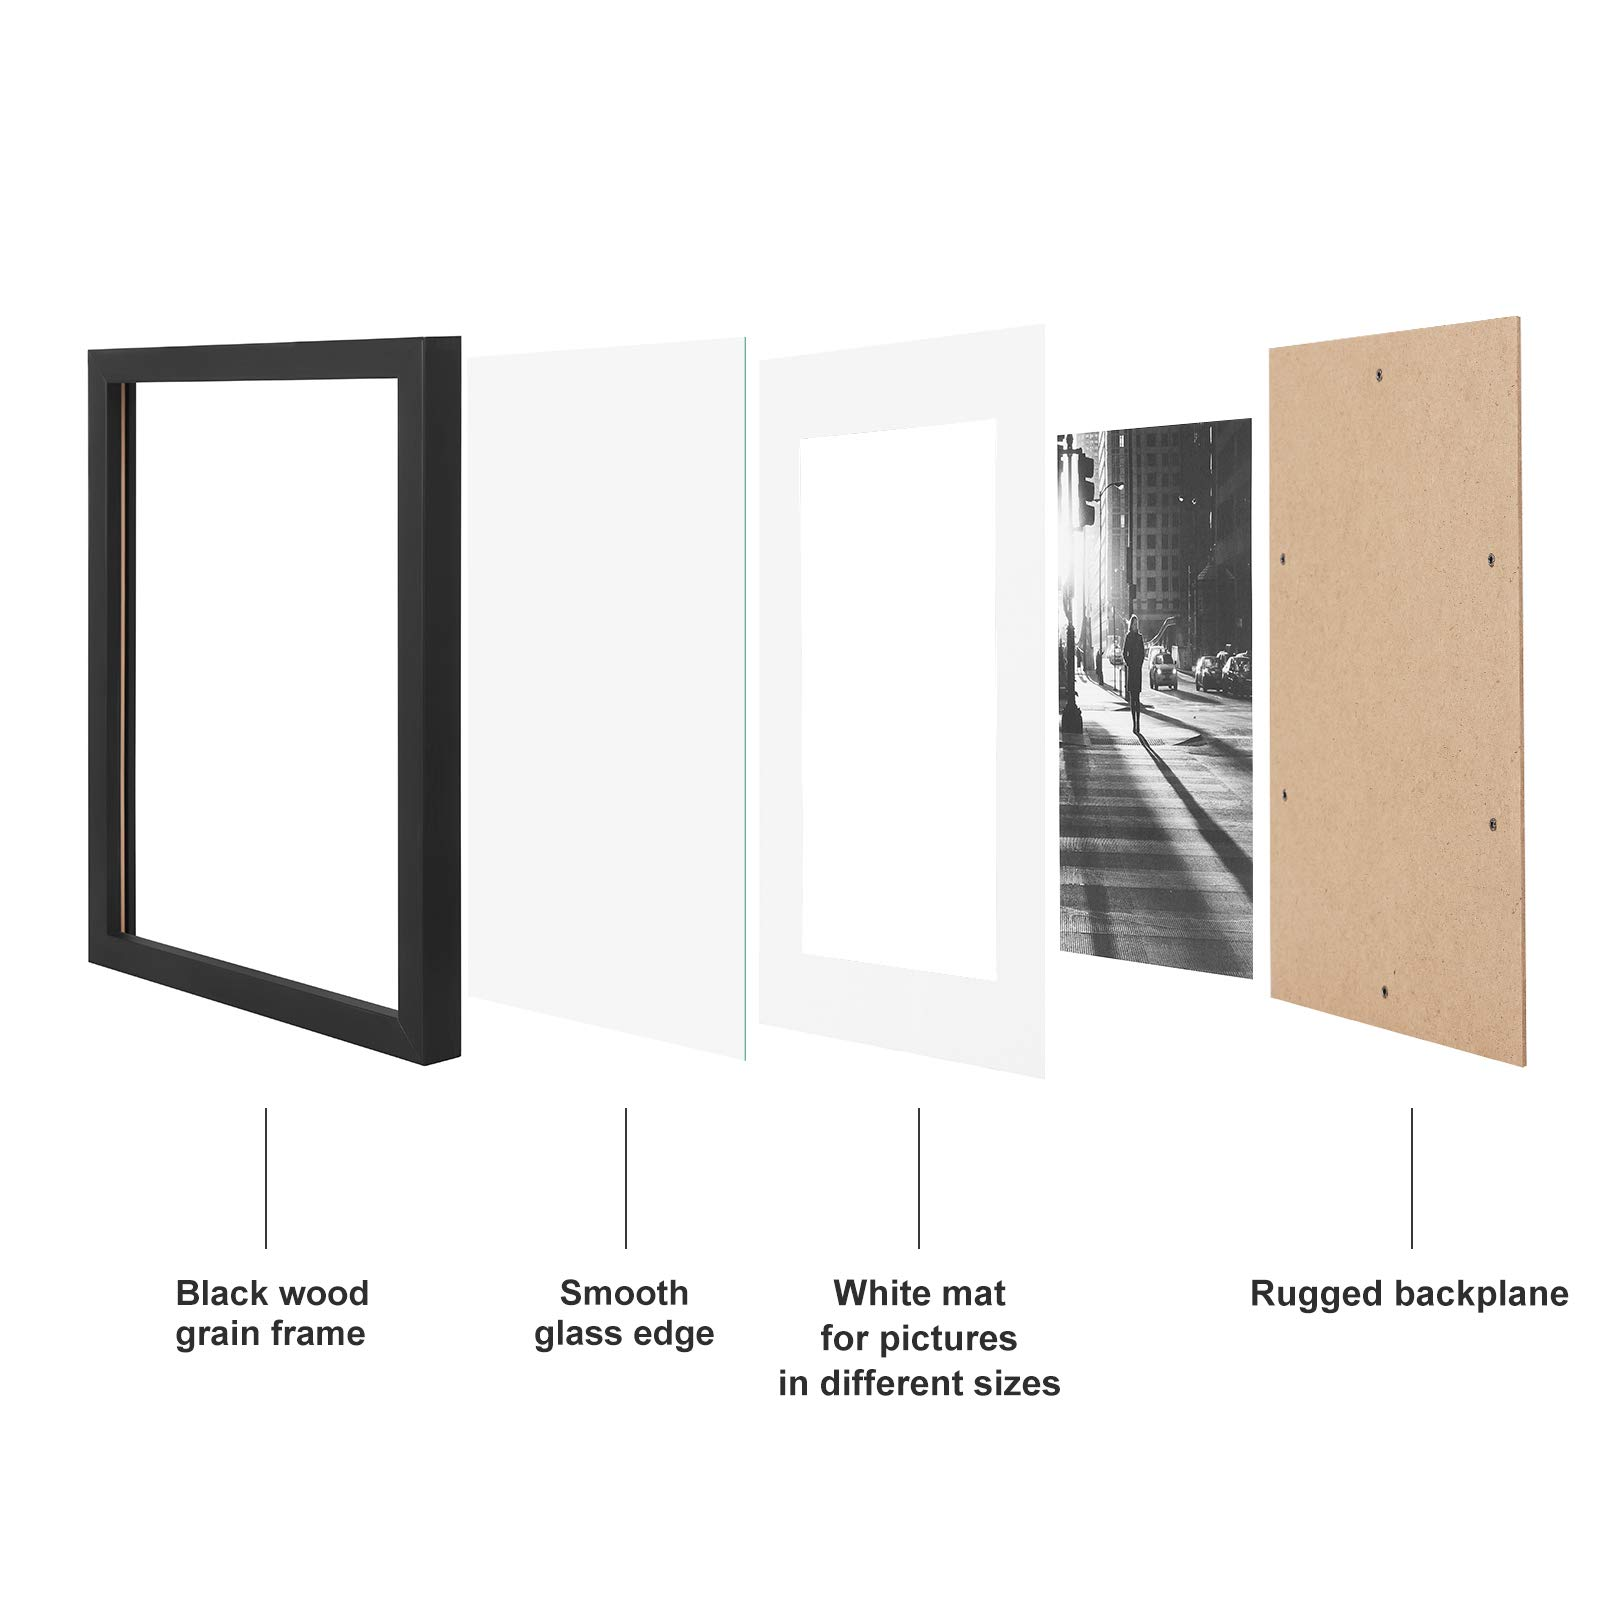 SONGMICS Picture Frames Set of 7 Pieces, One 11 x 14 Inches, Two 8 x 10 Inches, Four 6 x 8 Inches, with White Mat Real Glass, for Multiple Photos, Black Wood Grain URPF37BK by SONGMICS (Image #4)